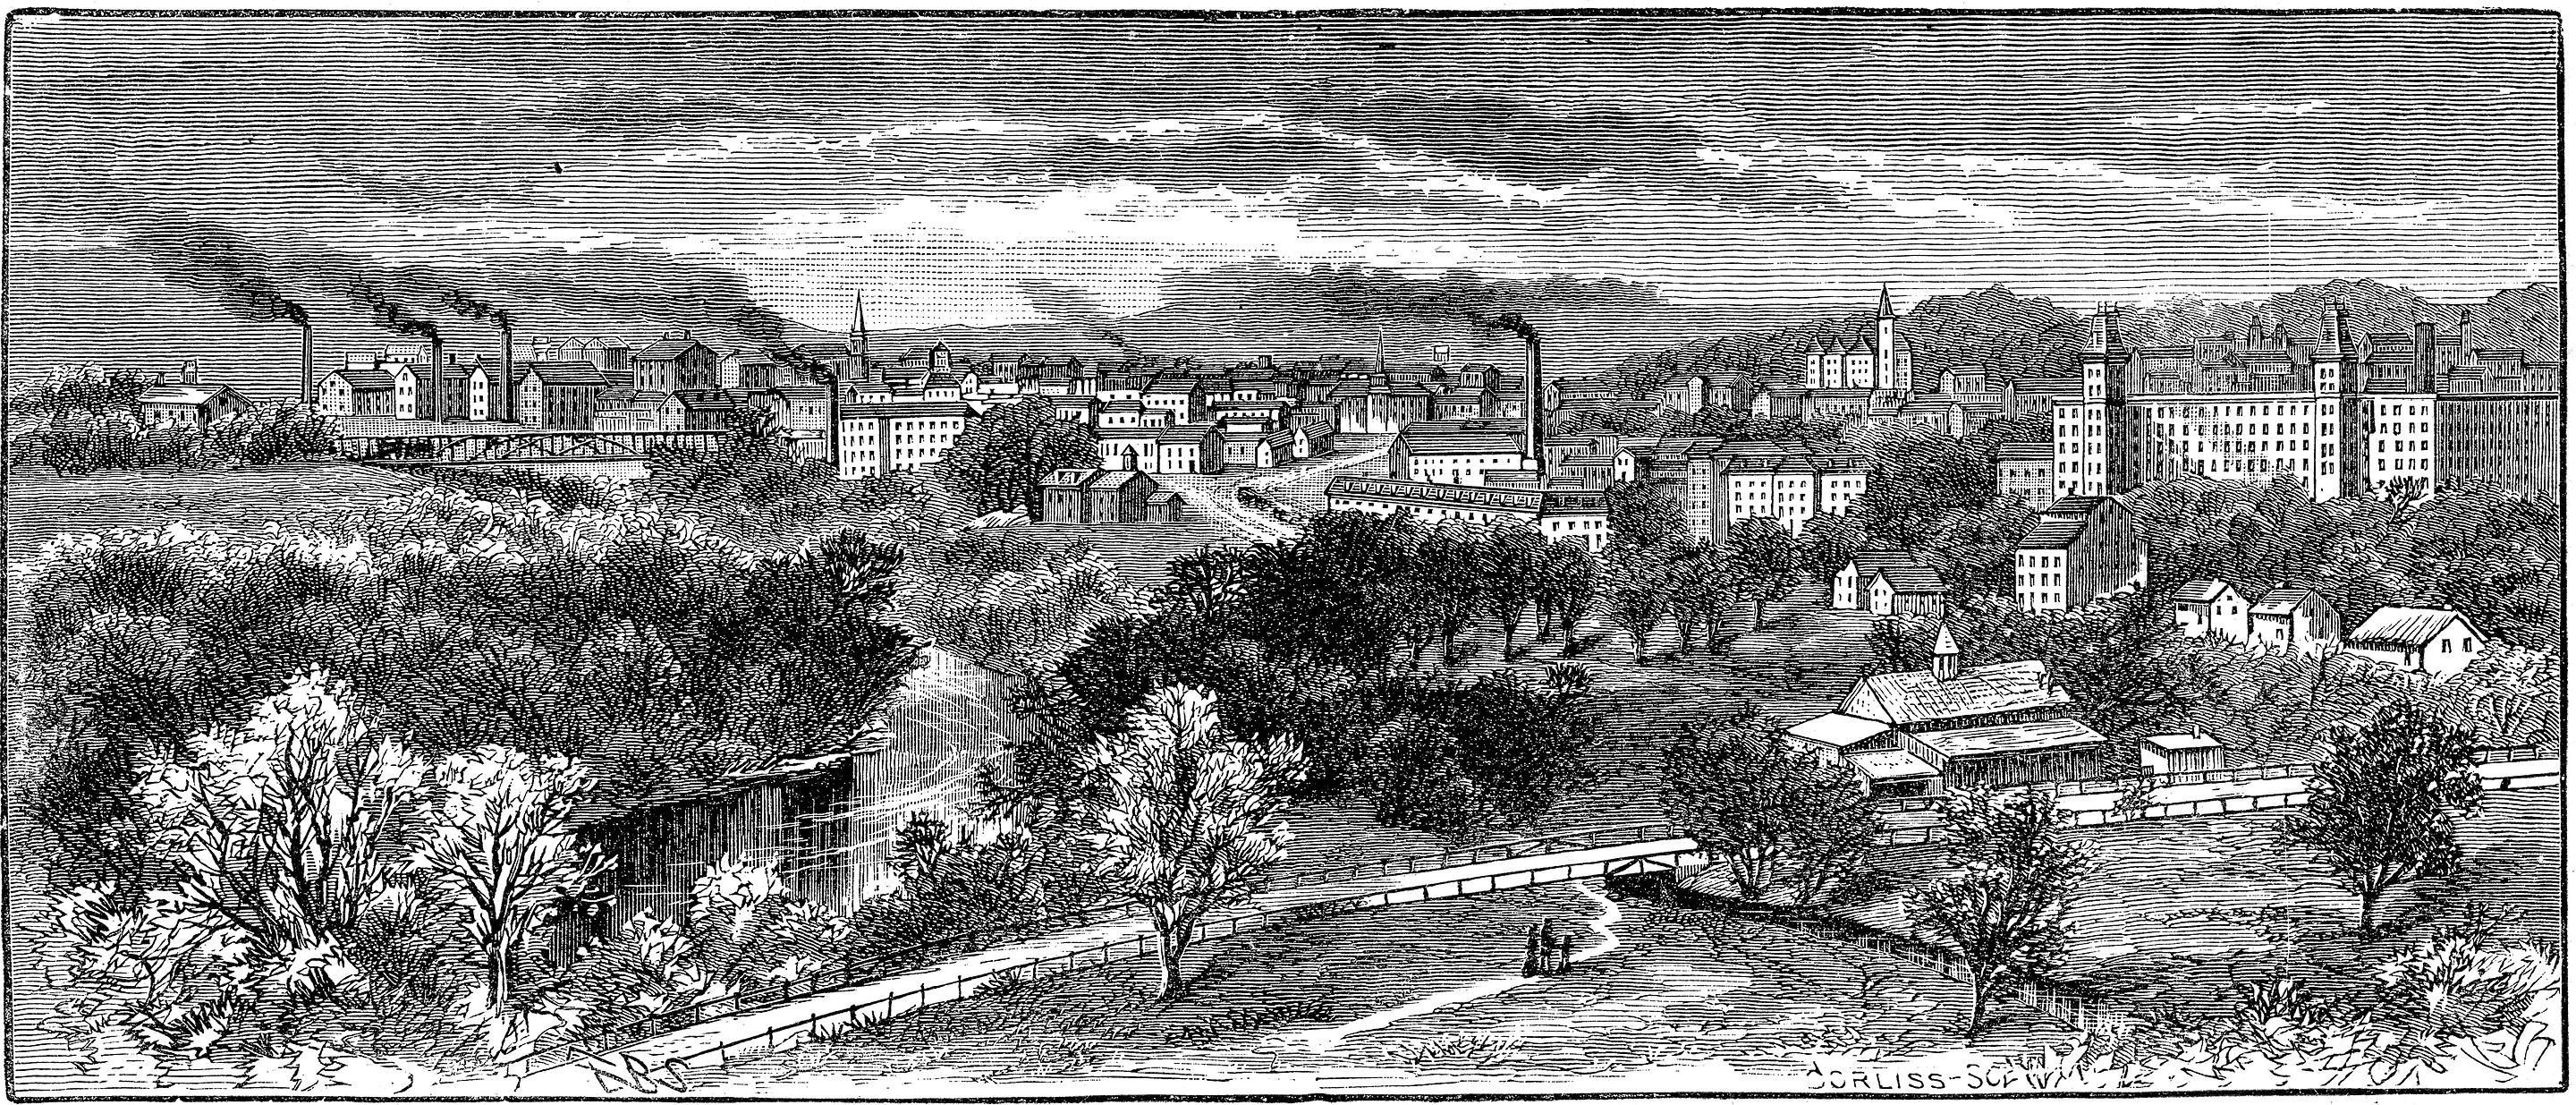 An 1886 etching of downtown Woonsocket